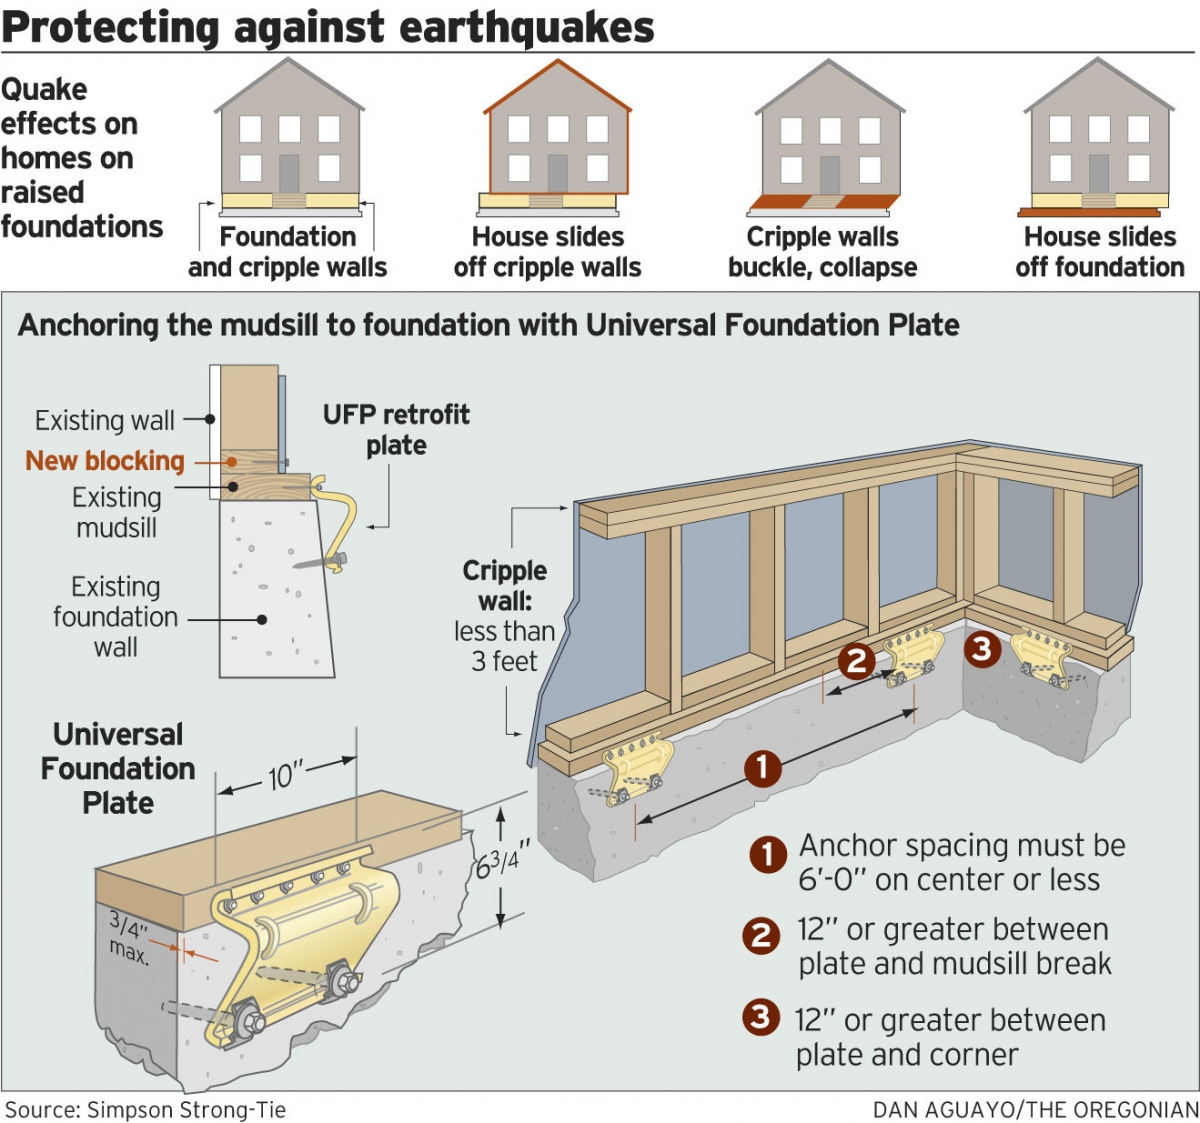 building retrofit diagram. unreinforced masonry buildings emergency  management. earthquake retrofitting foundation bolting cripple wall. how  home seismic retrofits work enhabit. pdf payback period based  prioritization of building. row house revolution ...  a.2002-acura-tl-radio.info. all rights reserved.